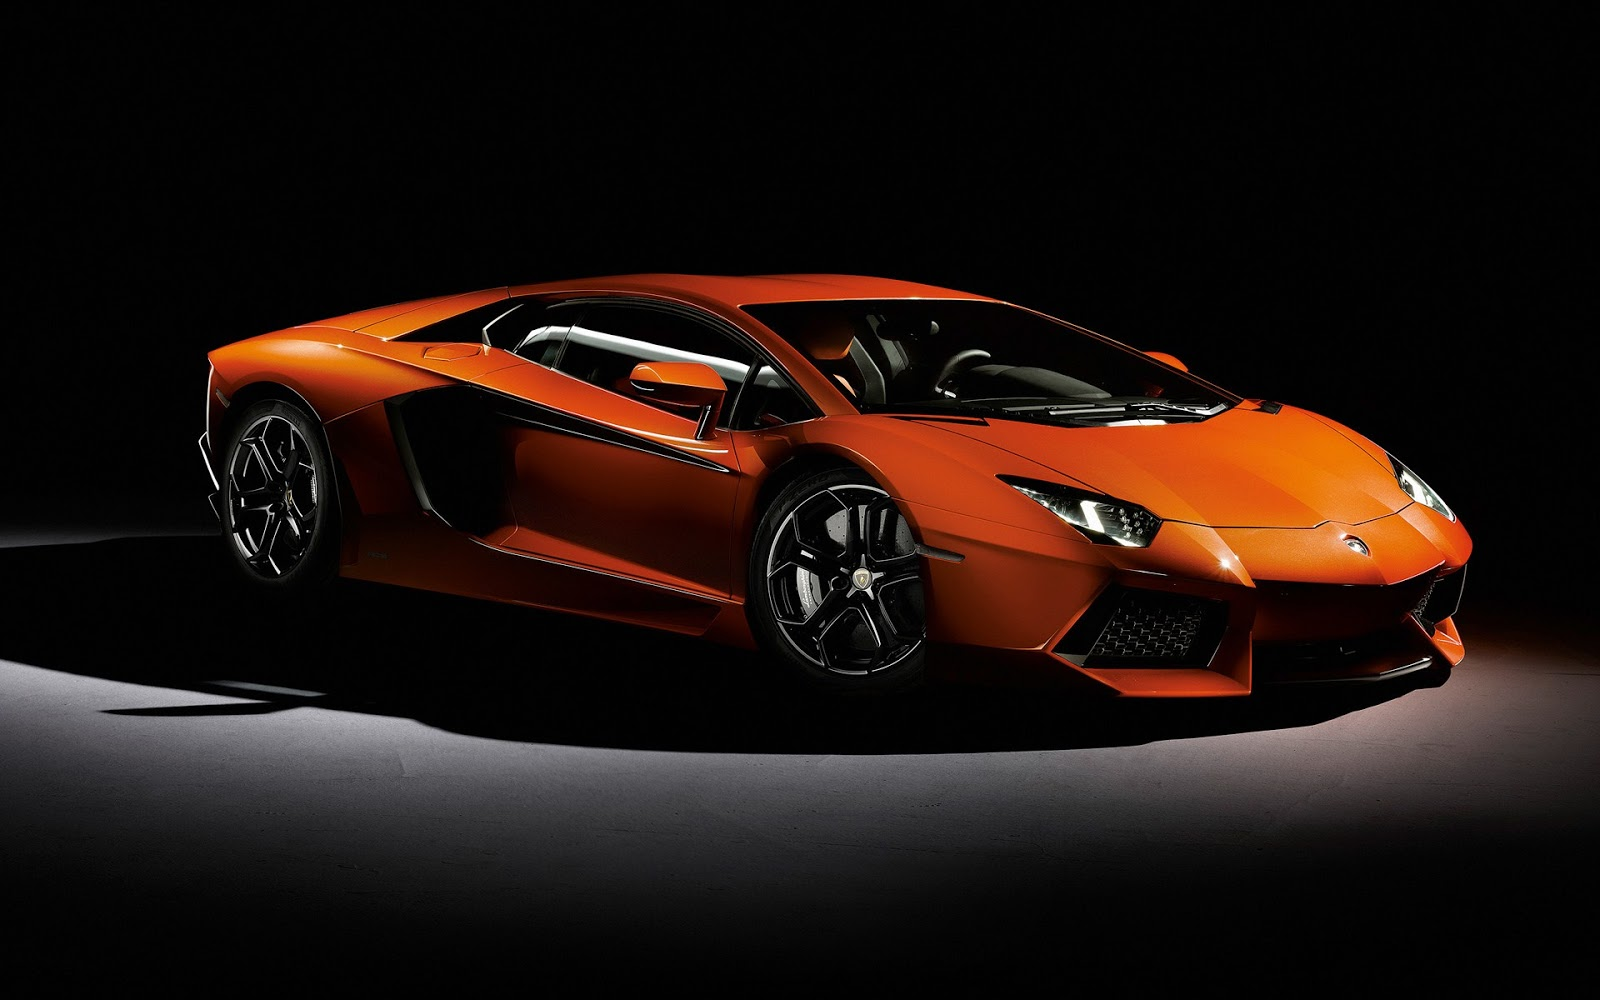 2014 lamborghini aventador car review car wallpaper collections gallery view. Black Bedroom Furniture Sets. Home Design Ideas